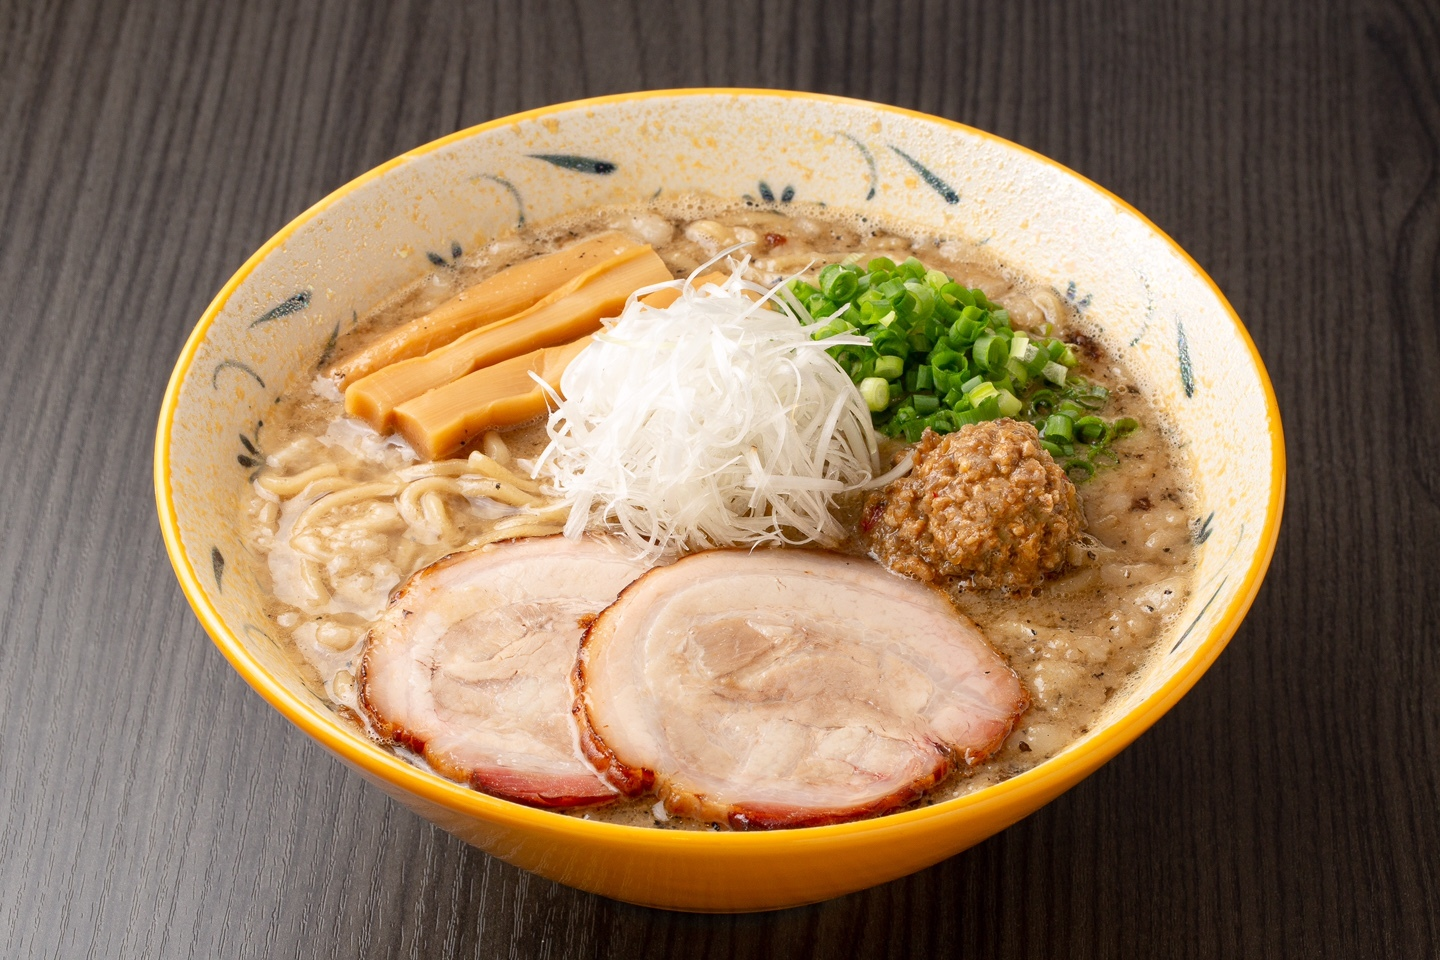 Miso Ramen made with fish stock and lard at Sapporo Fujiya. The pork fillet, roasted in a hanging pot, is extremely juicy and not to be missed!